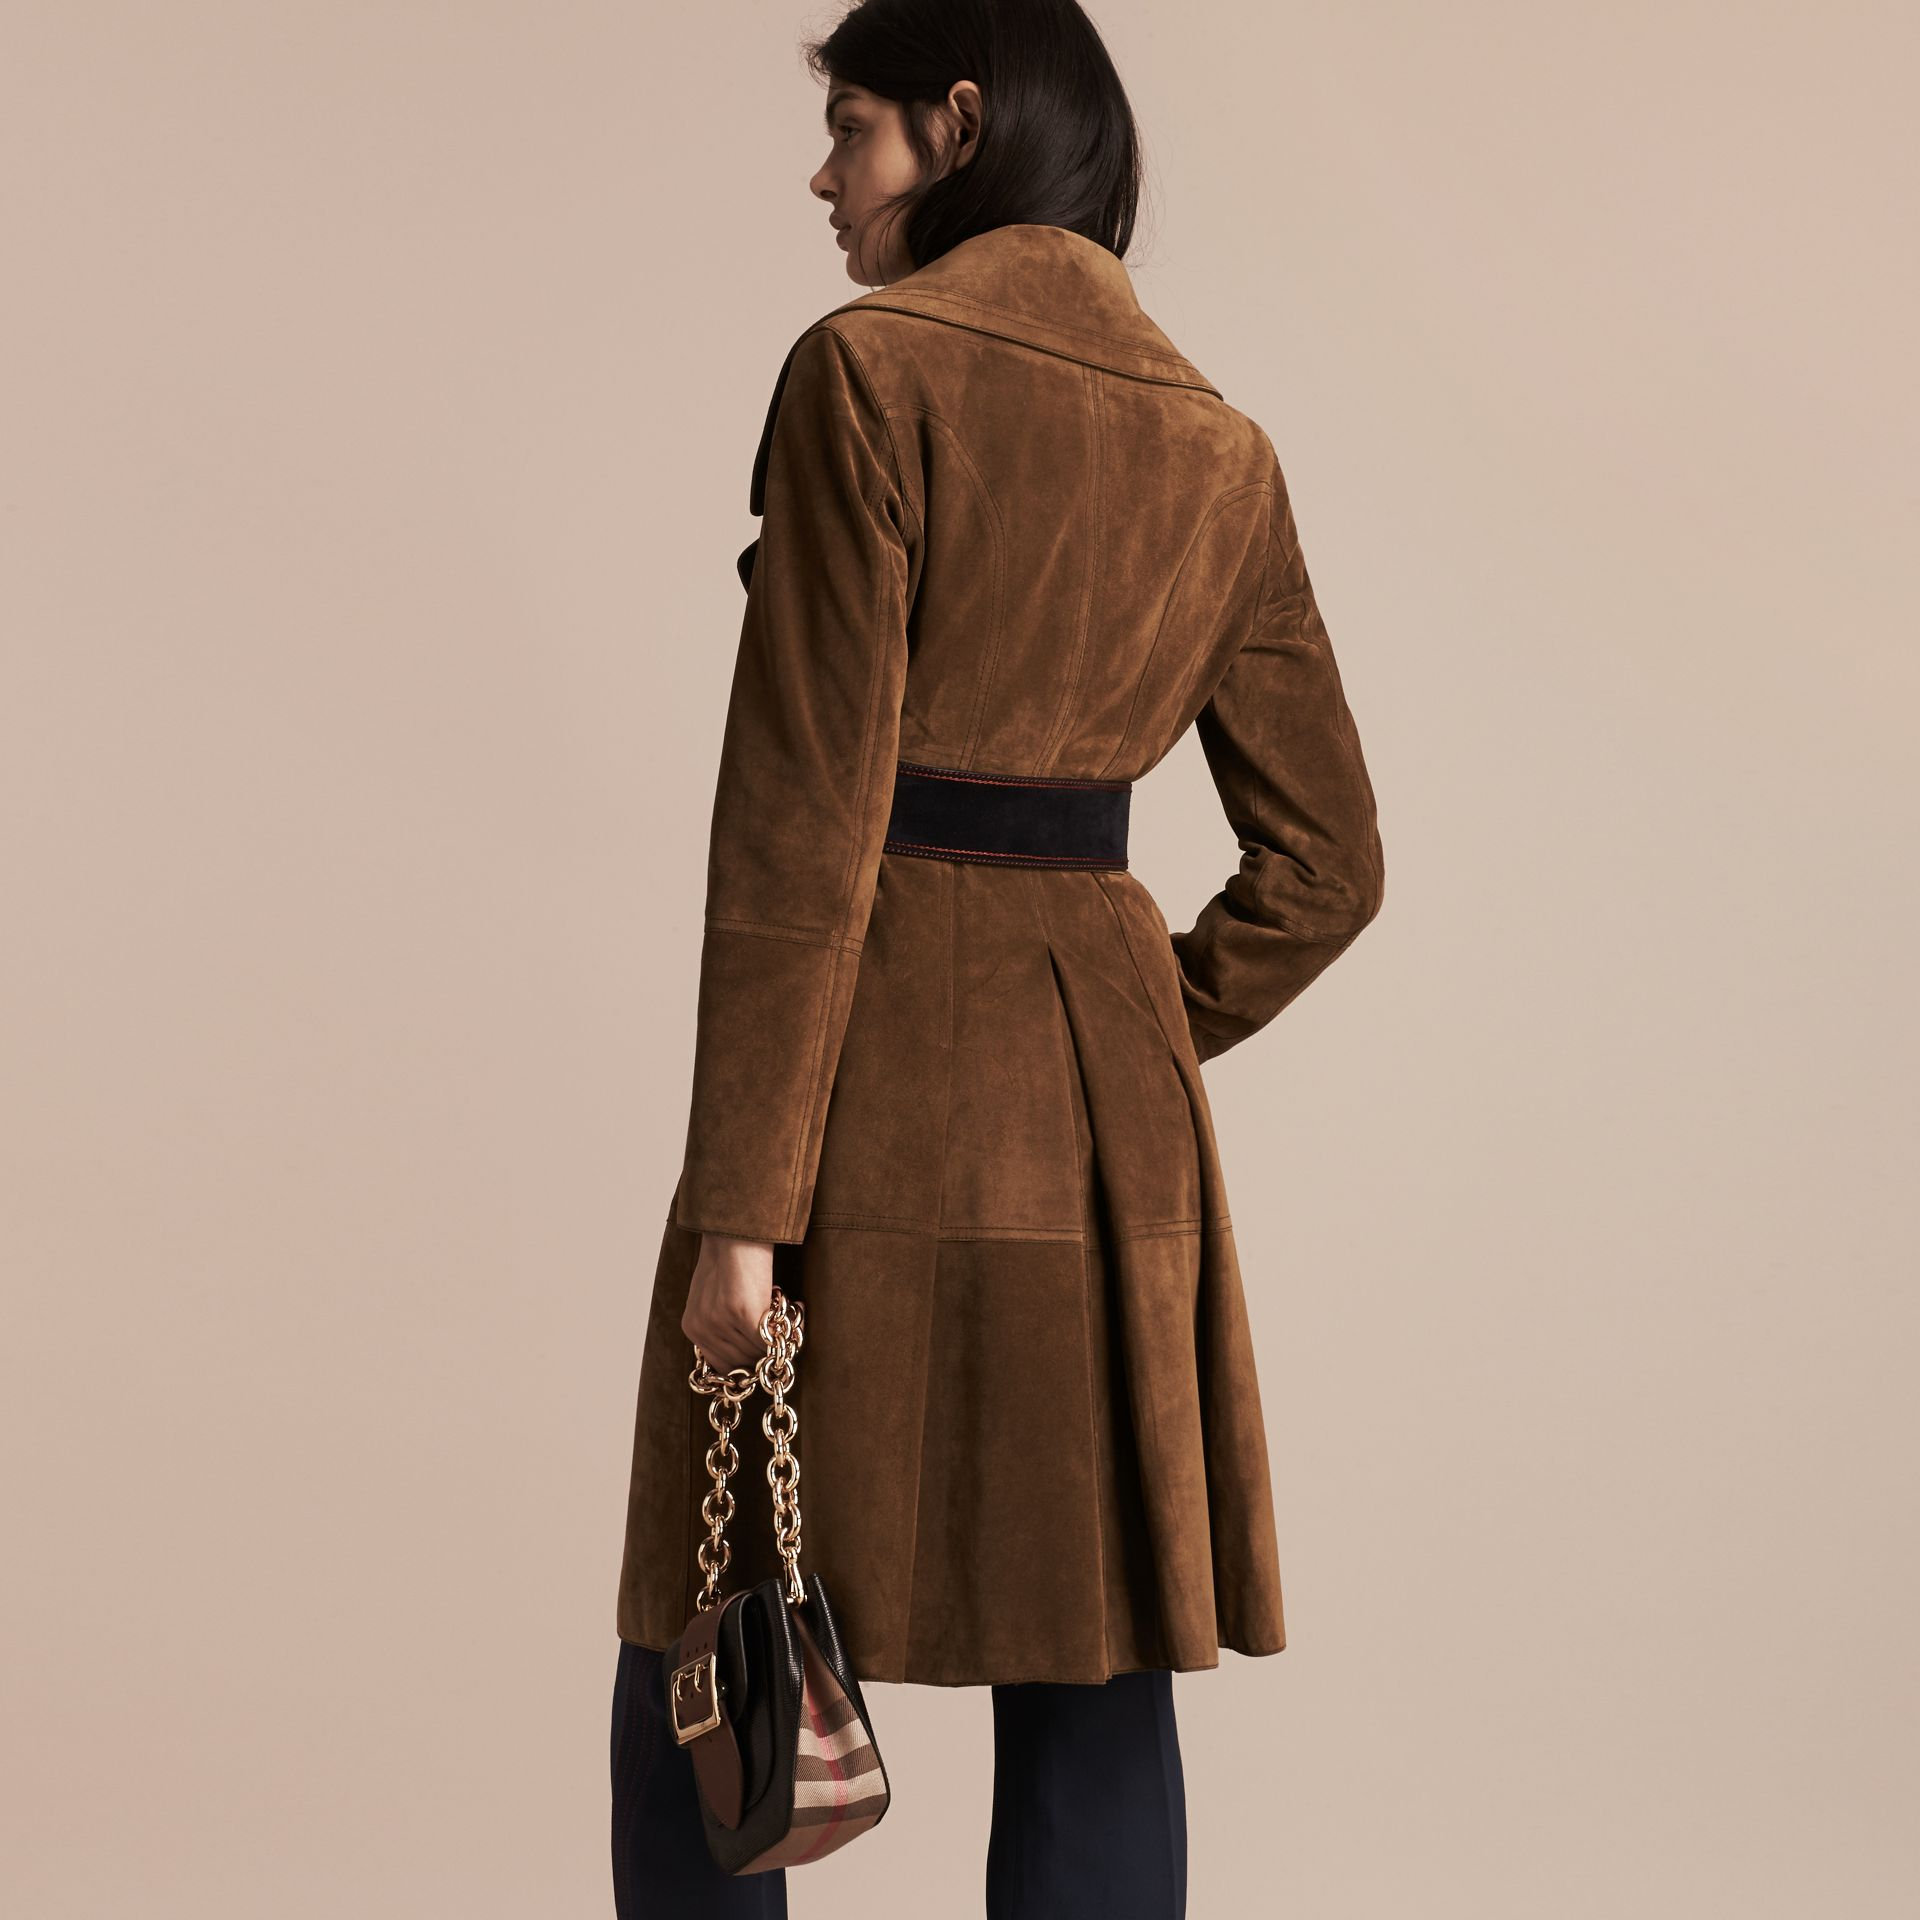 Charcoal brown Double-breasted Suede Coat - gallery image 3